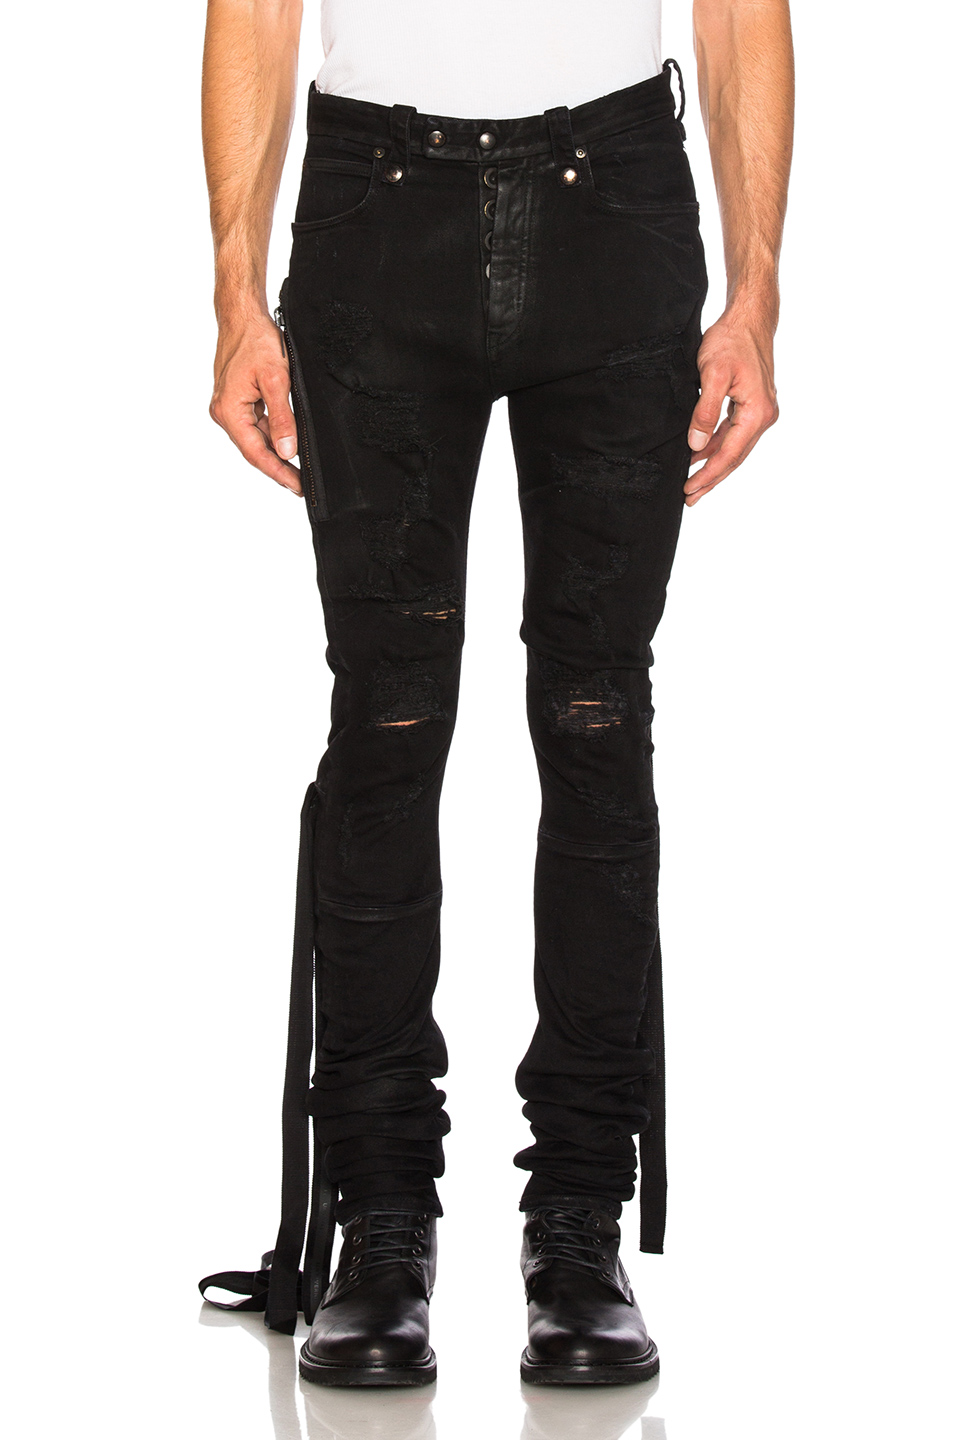 Unravel Denim Distort Parachute Jeans in Black